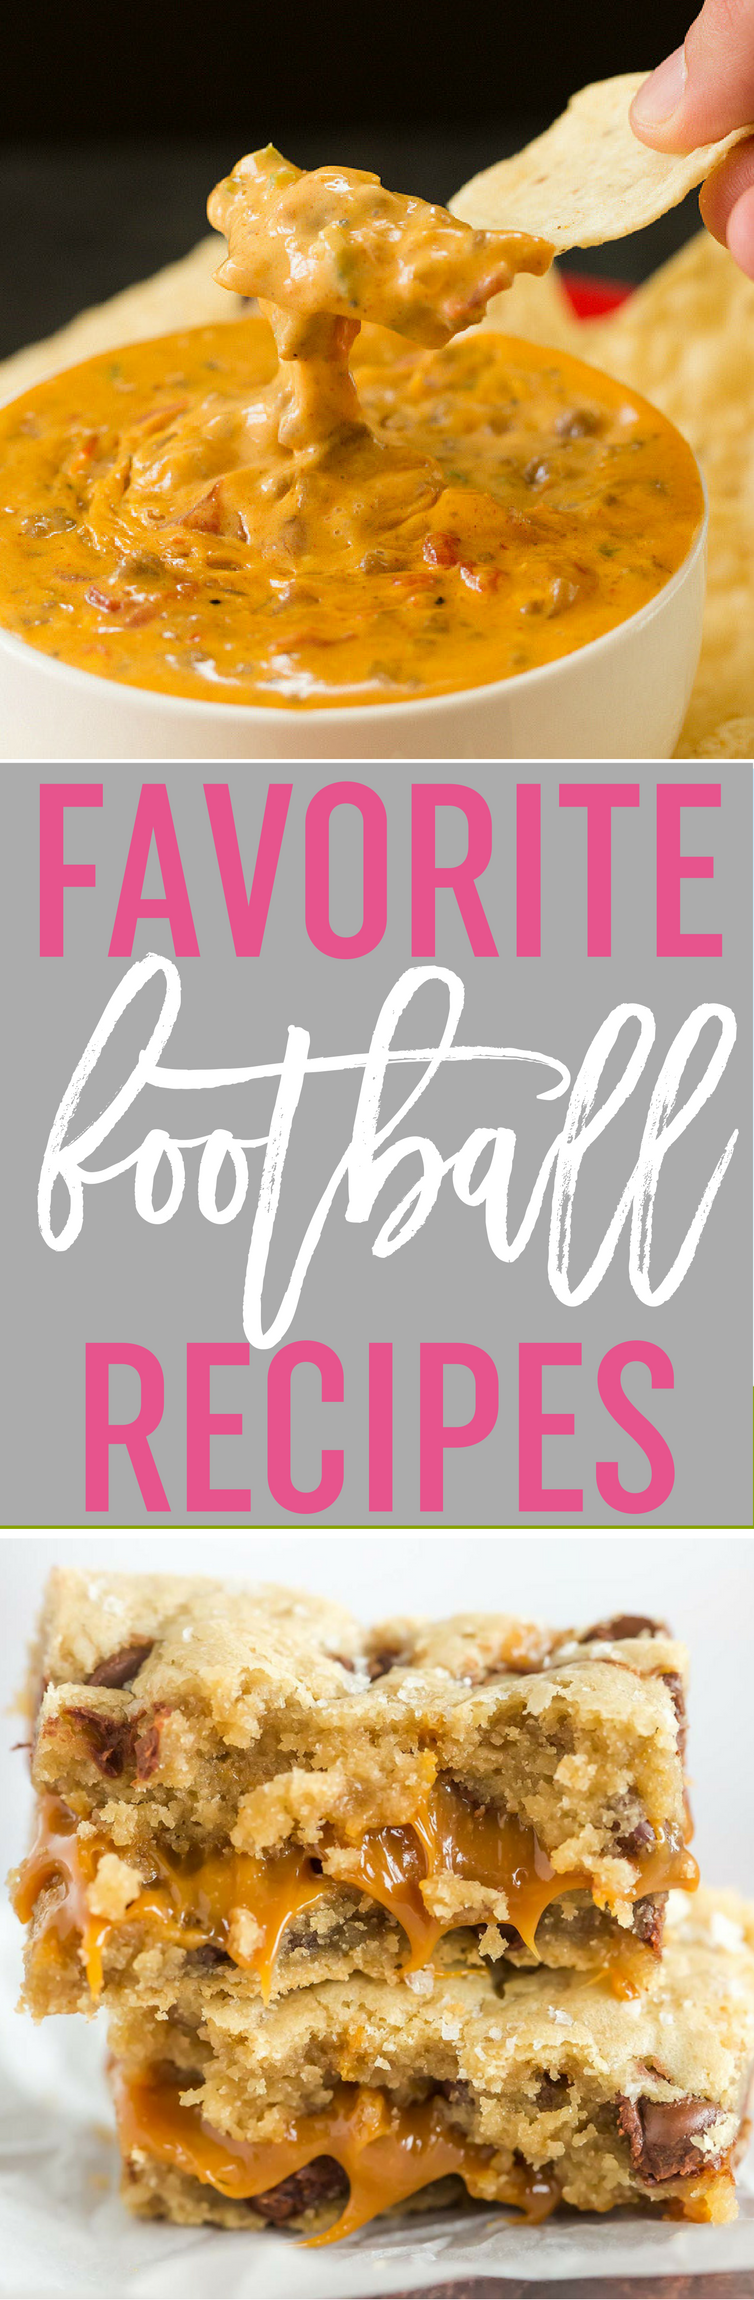 80 of My Favorite Football Food Recipes